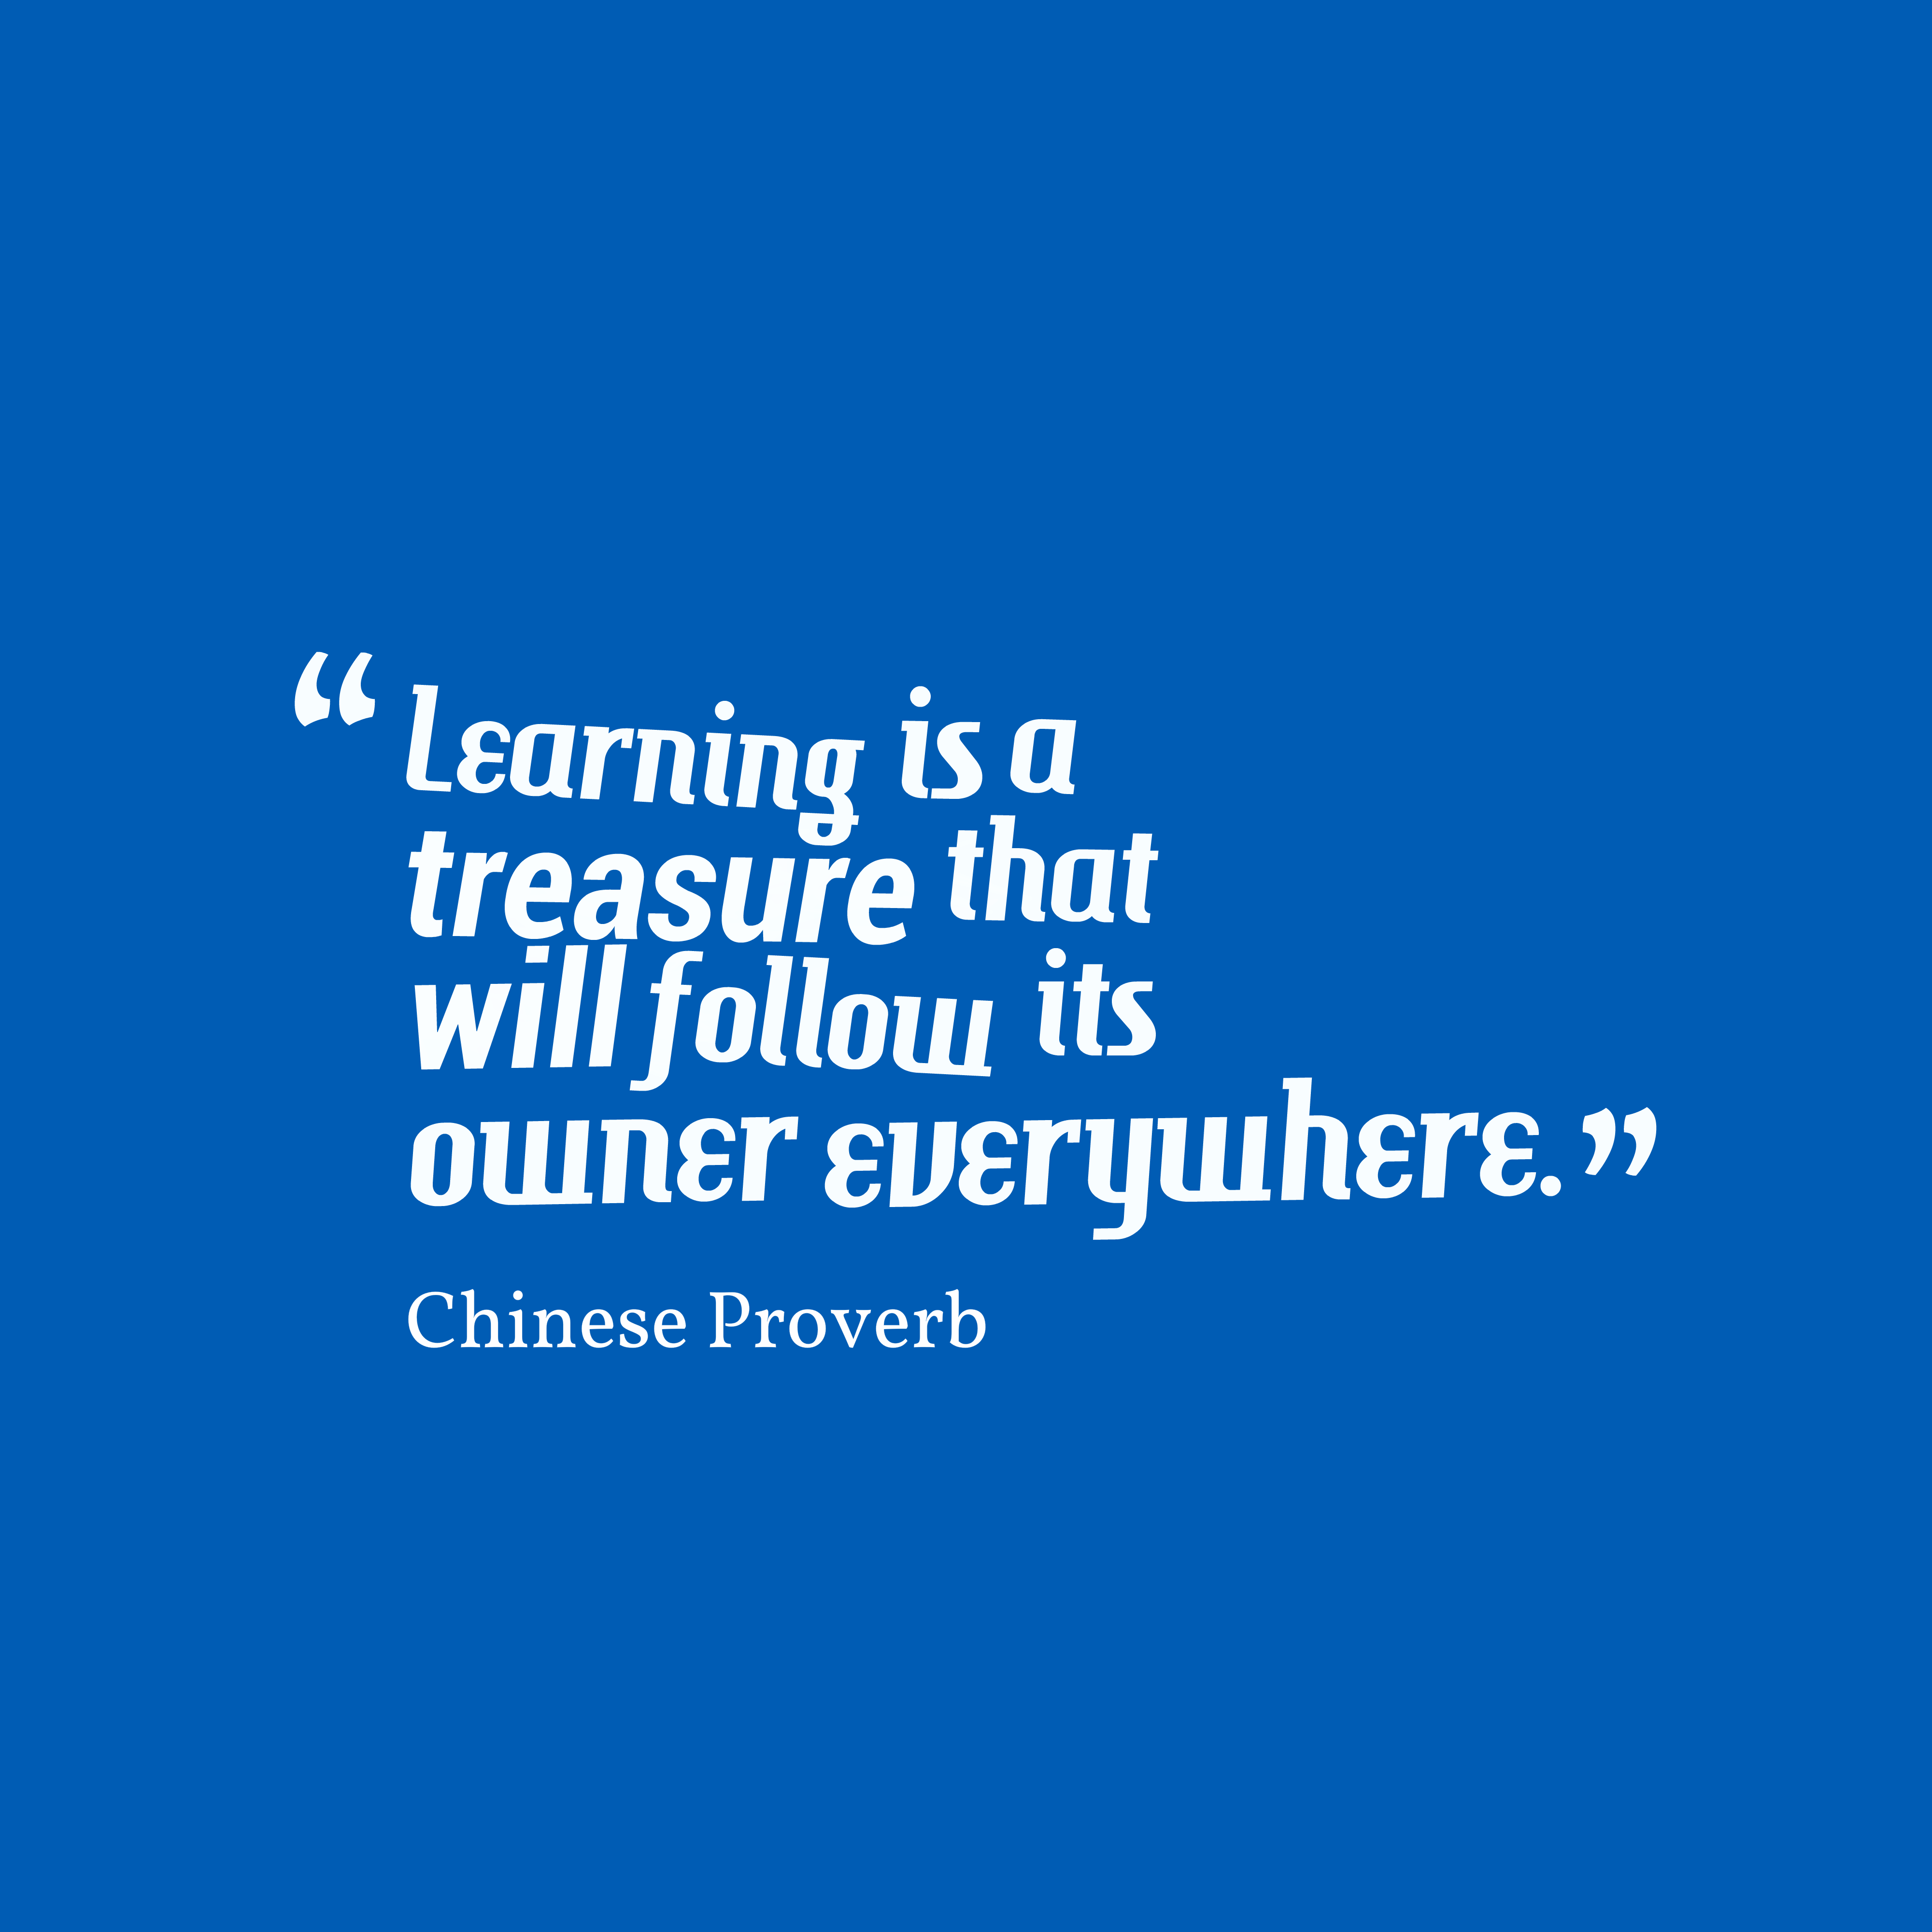 Quotes image of Learning is a treasure that will follow its owner everywhere.